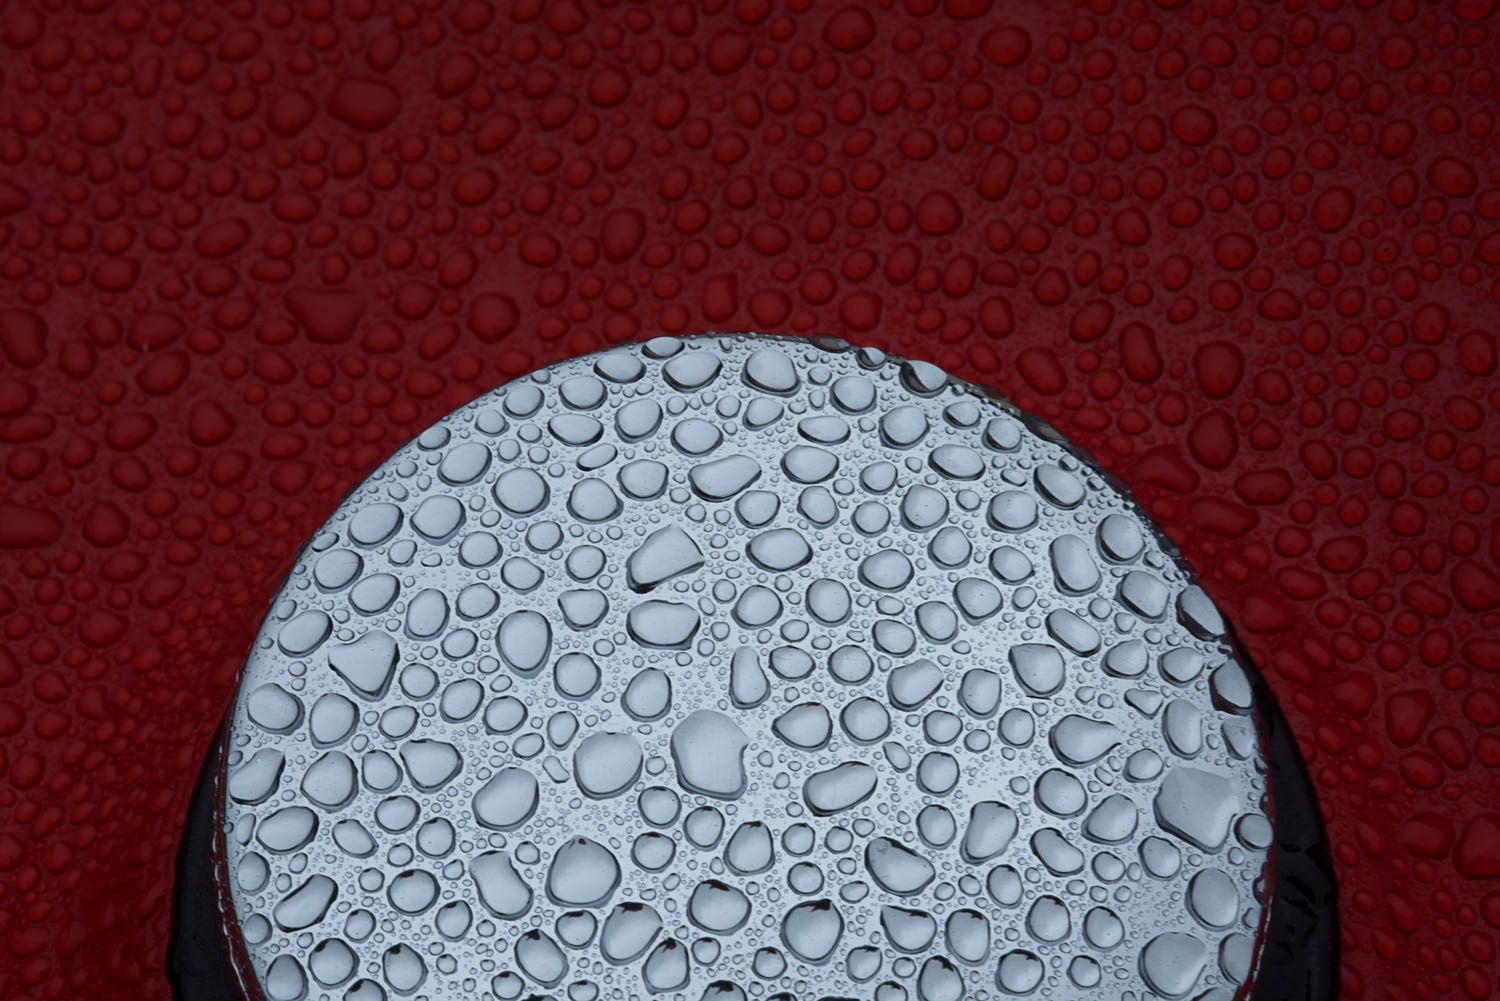 MG Gas cap with water drops